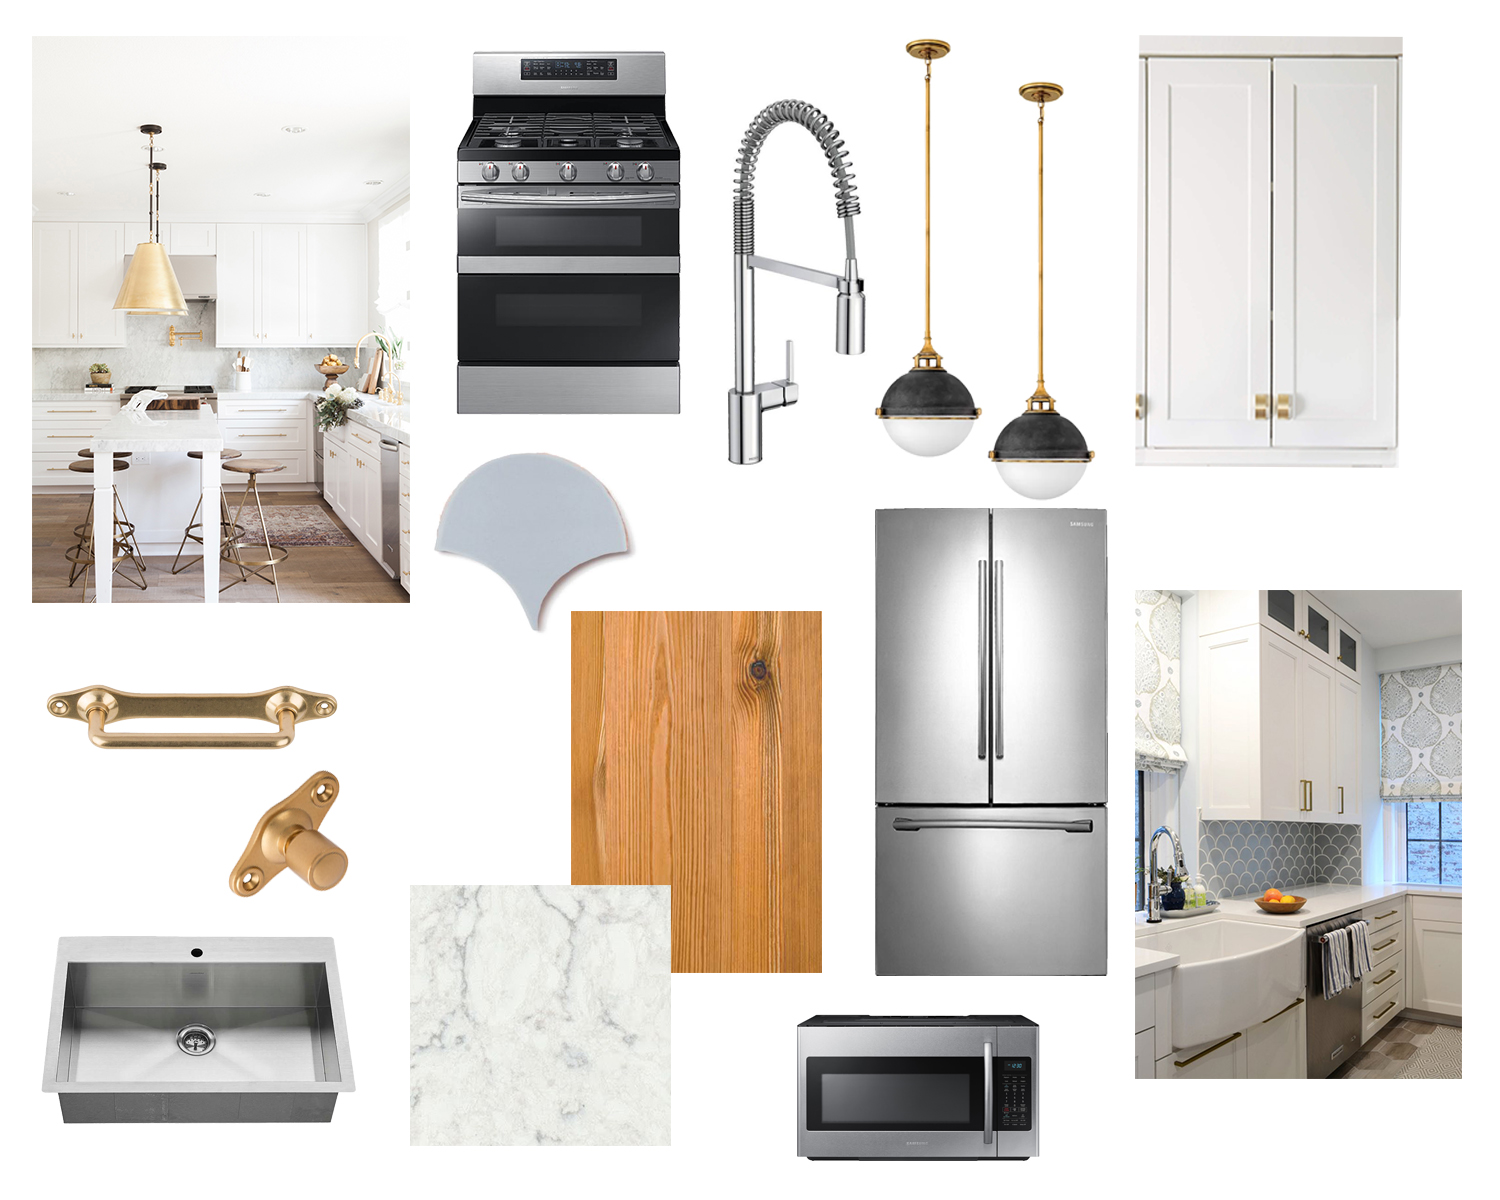 Kitchen Renovation: Layout and Final Mood Board — The White Apartment